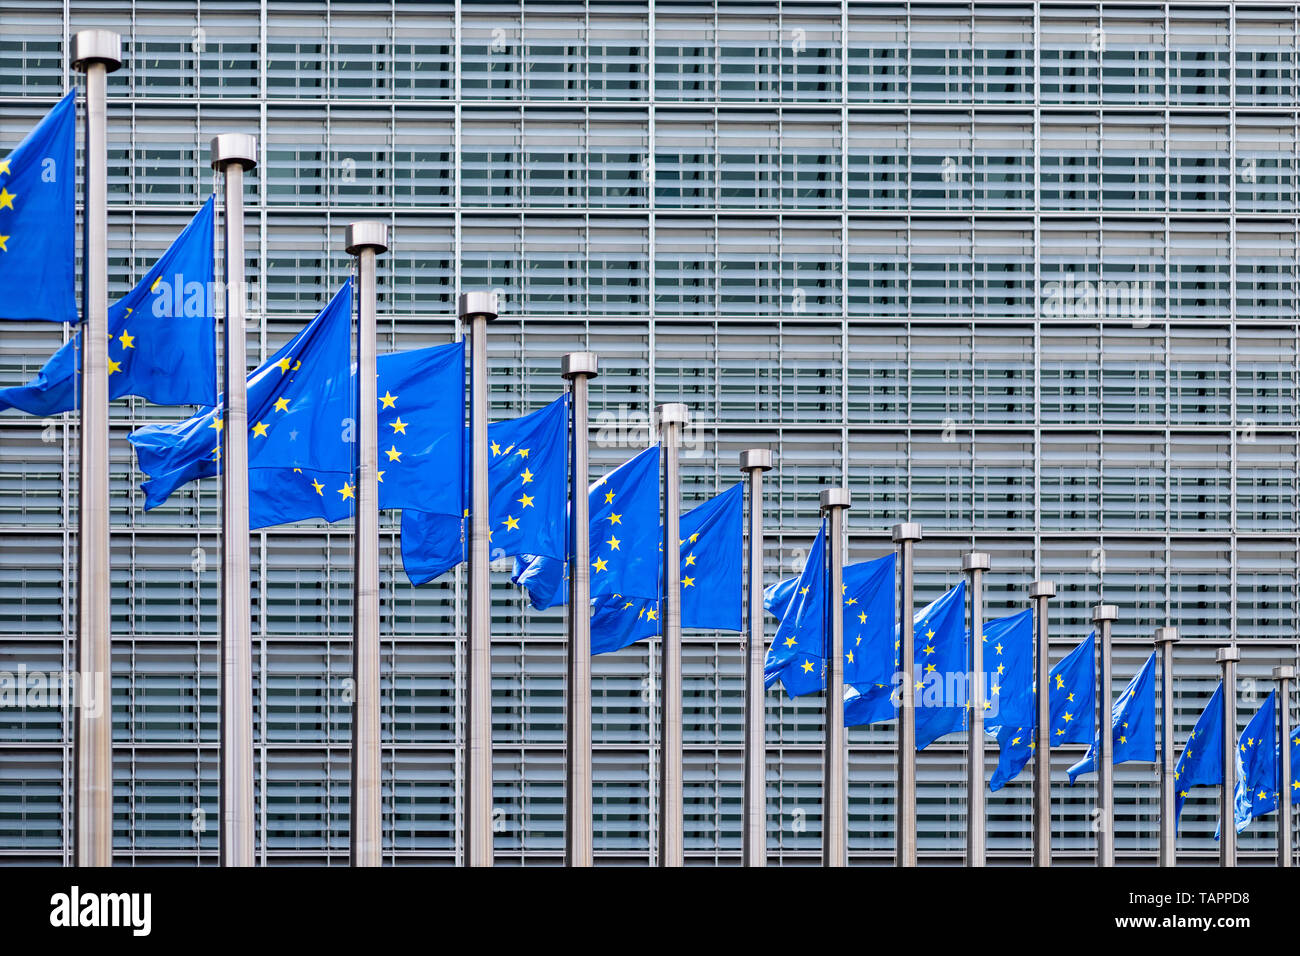 26 May 2019, Belgium, Brüssel: European flags flutter in the wind in front of the Berlaymont building, the seat of the European Commission. From 23 May to 26 May, the citizens of 28 EU states will elect a new parliament. Photo: Marcel Kusch/dpa Stock Photo